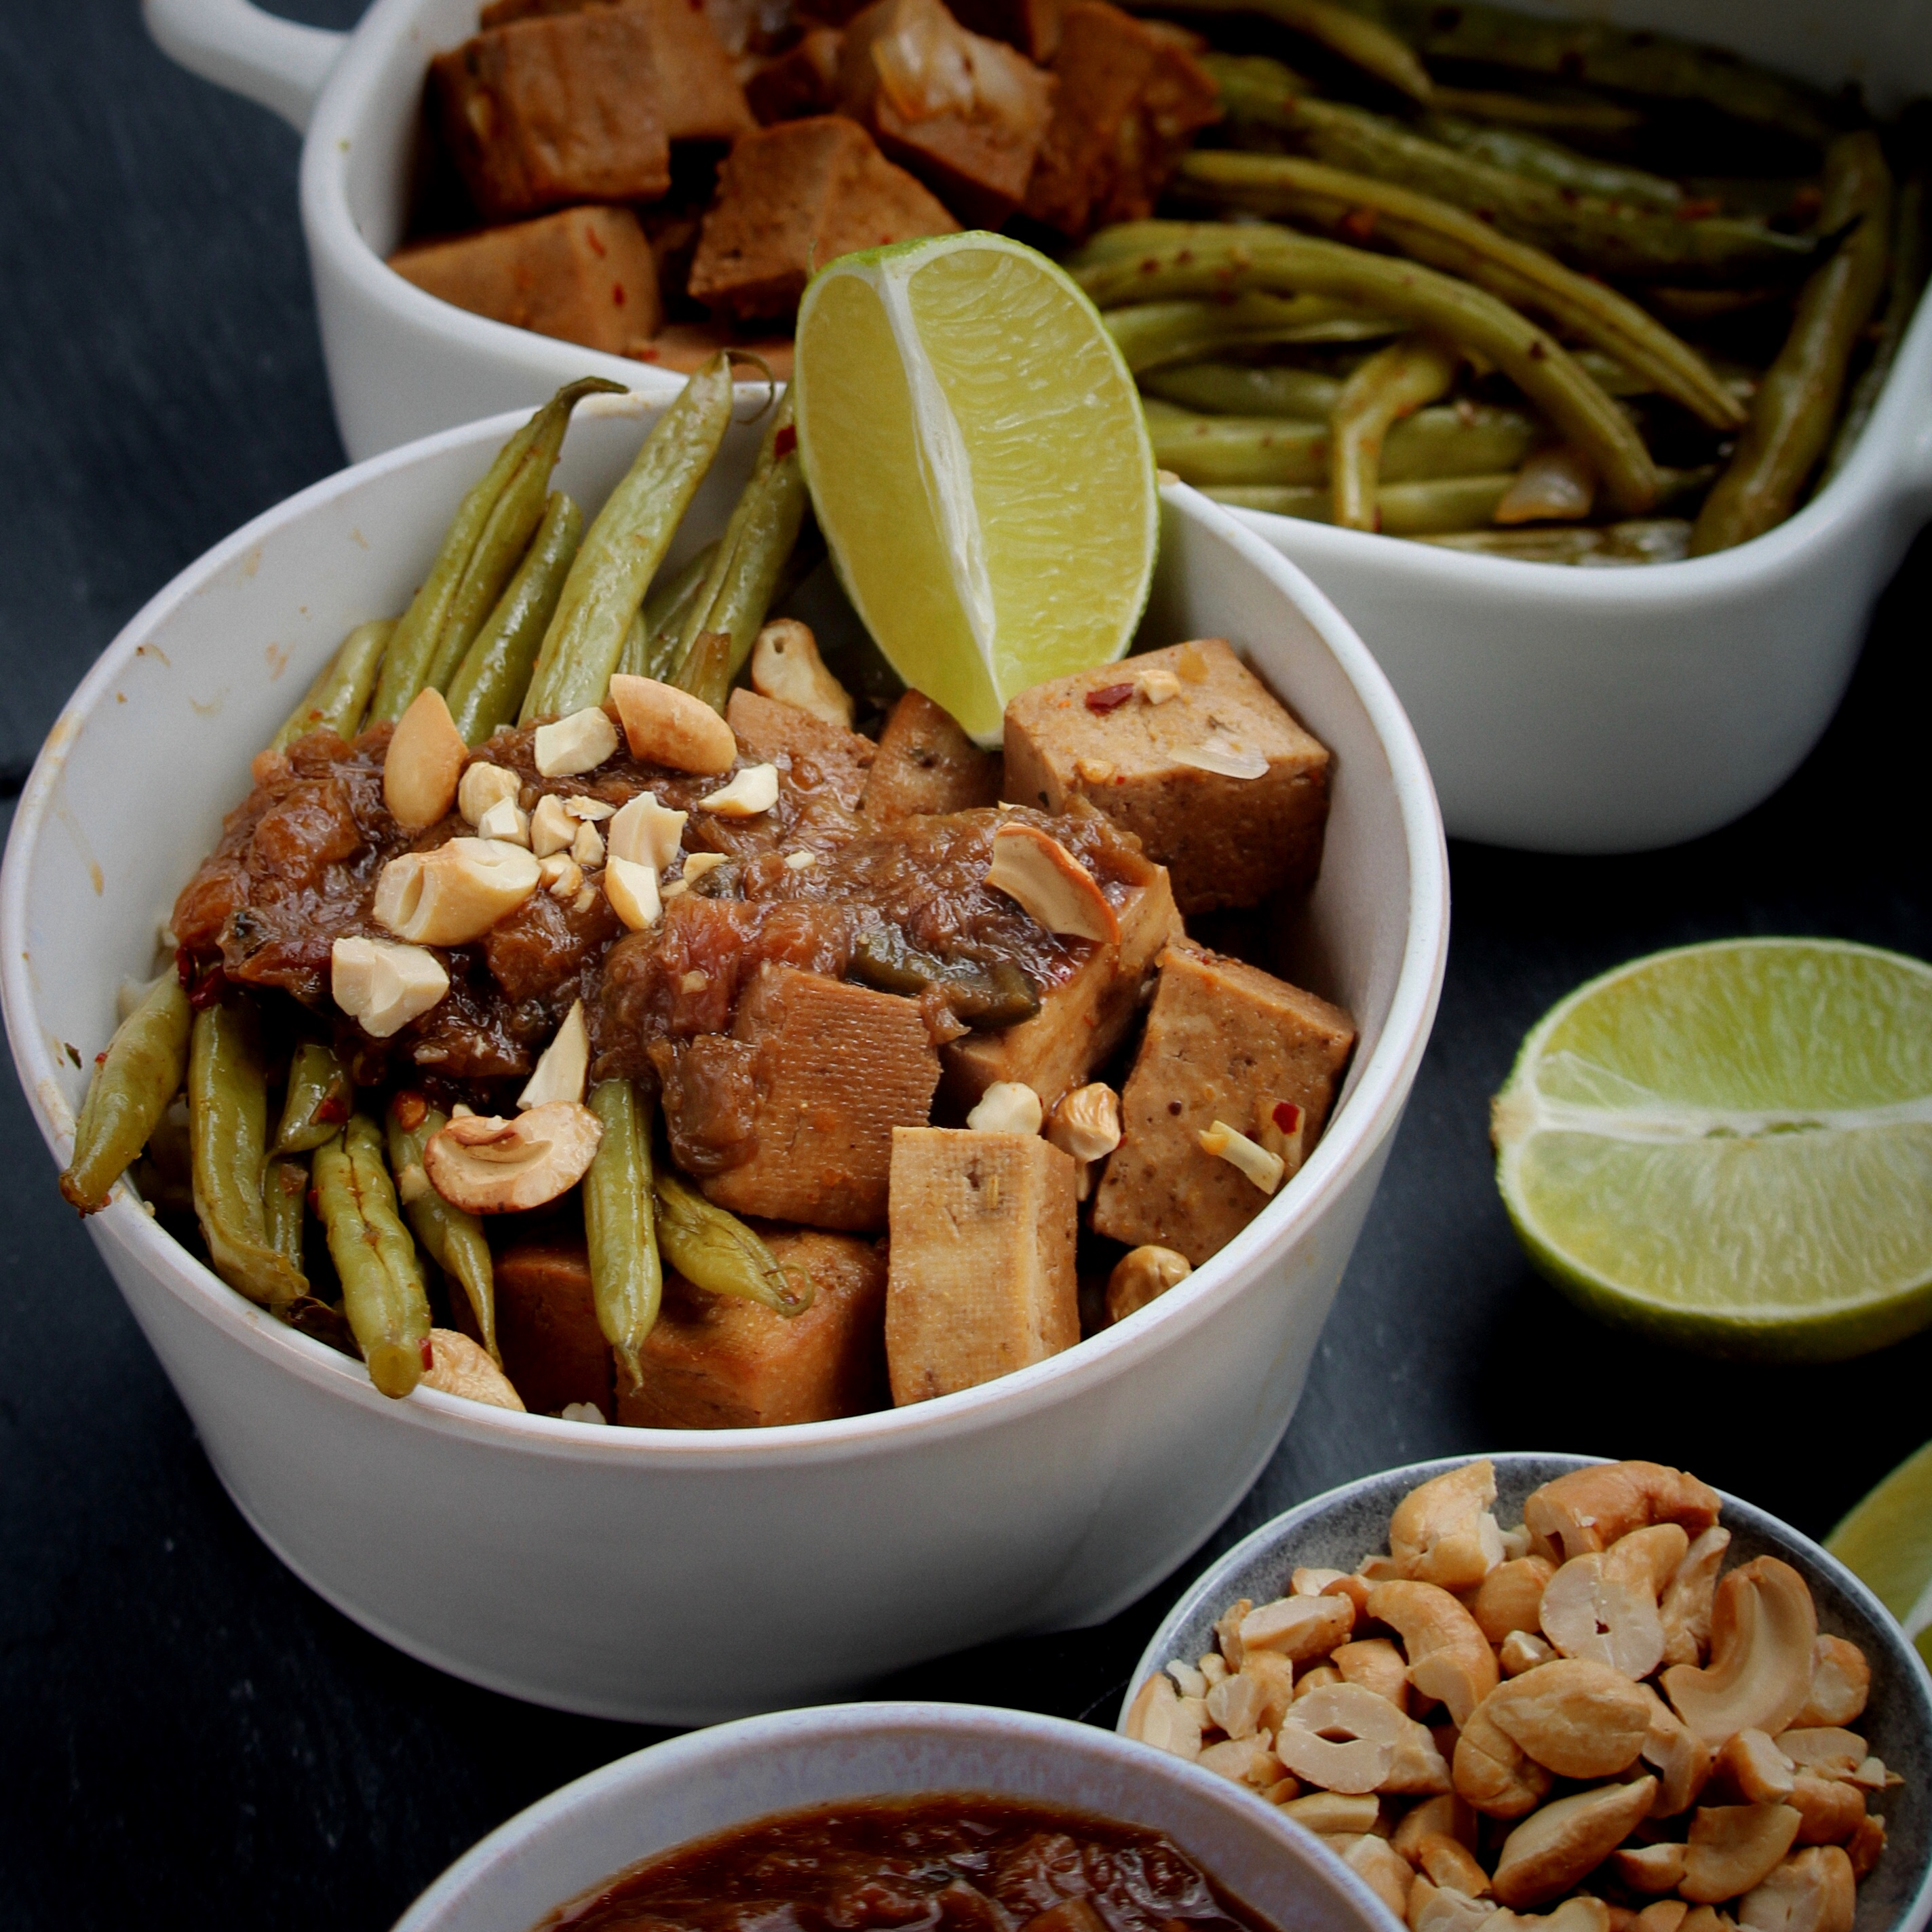 Baked Tofu and Green Beans with Spicy Rhubarb Sauce